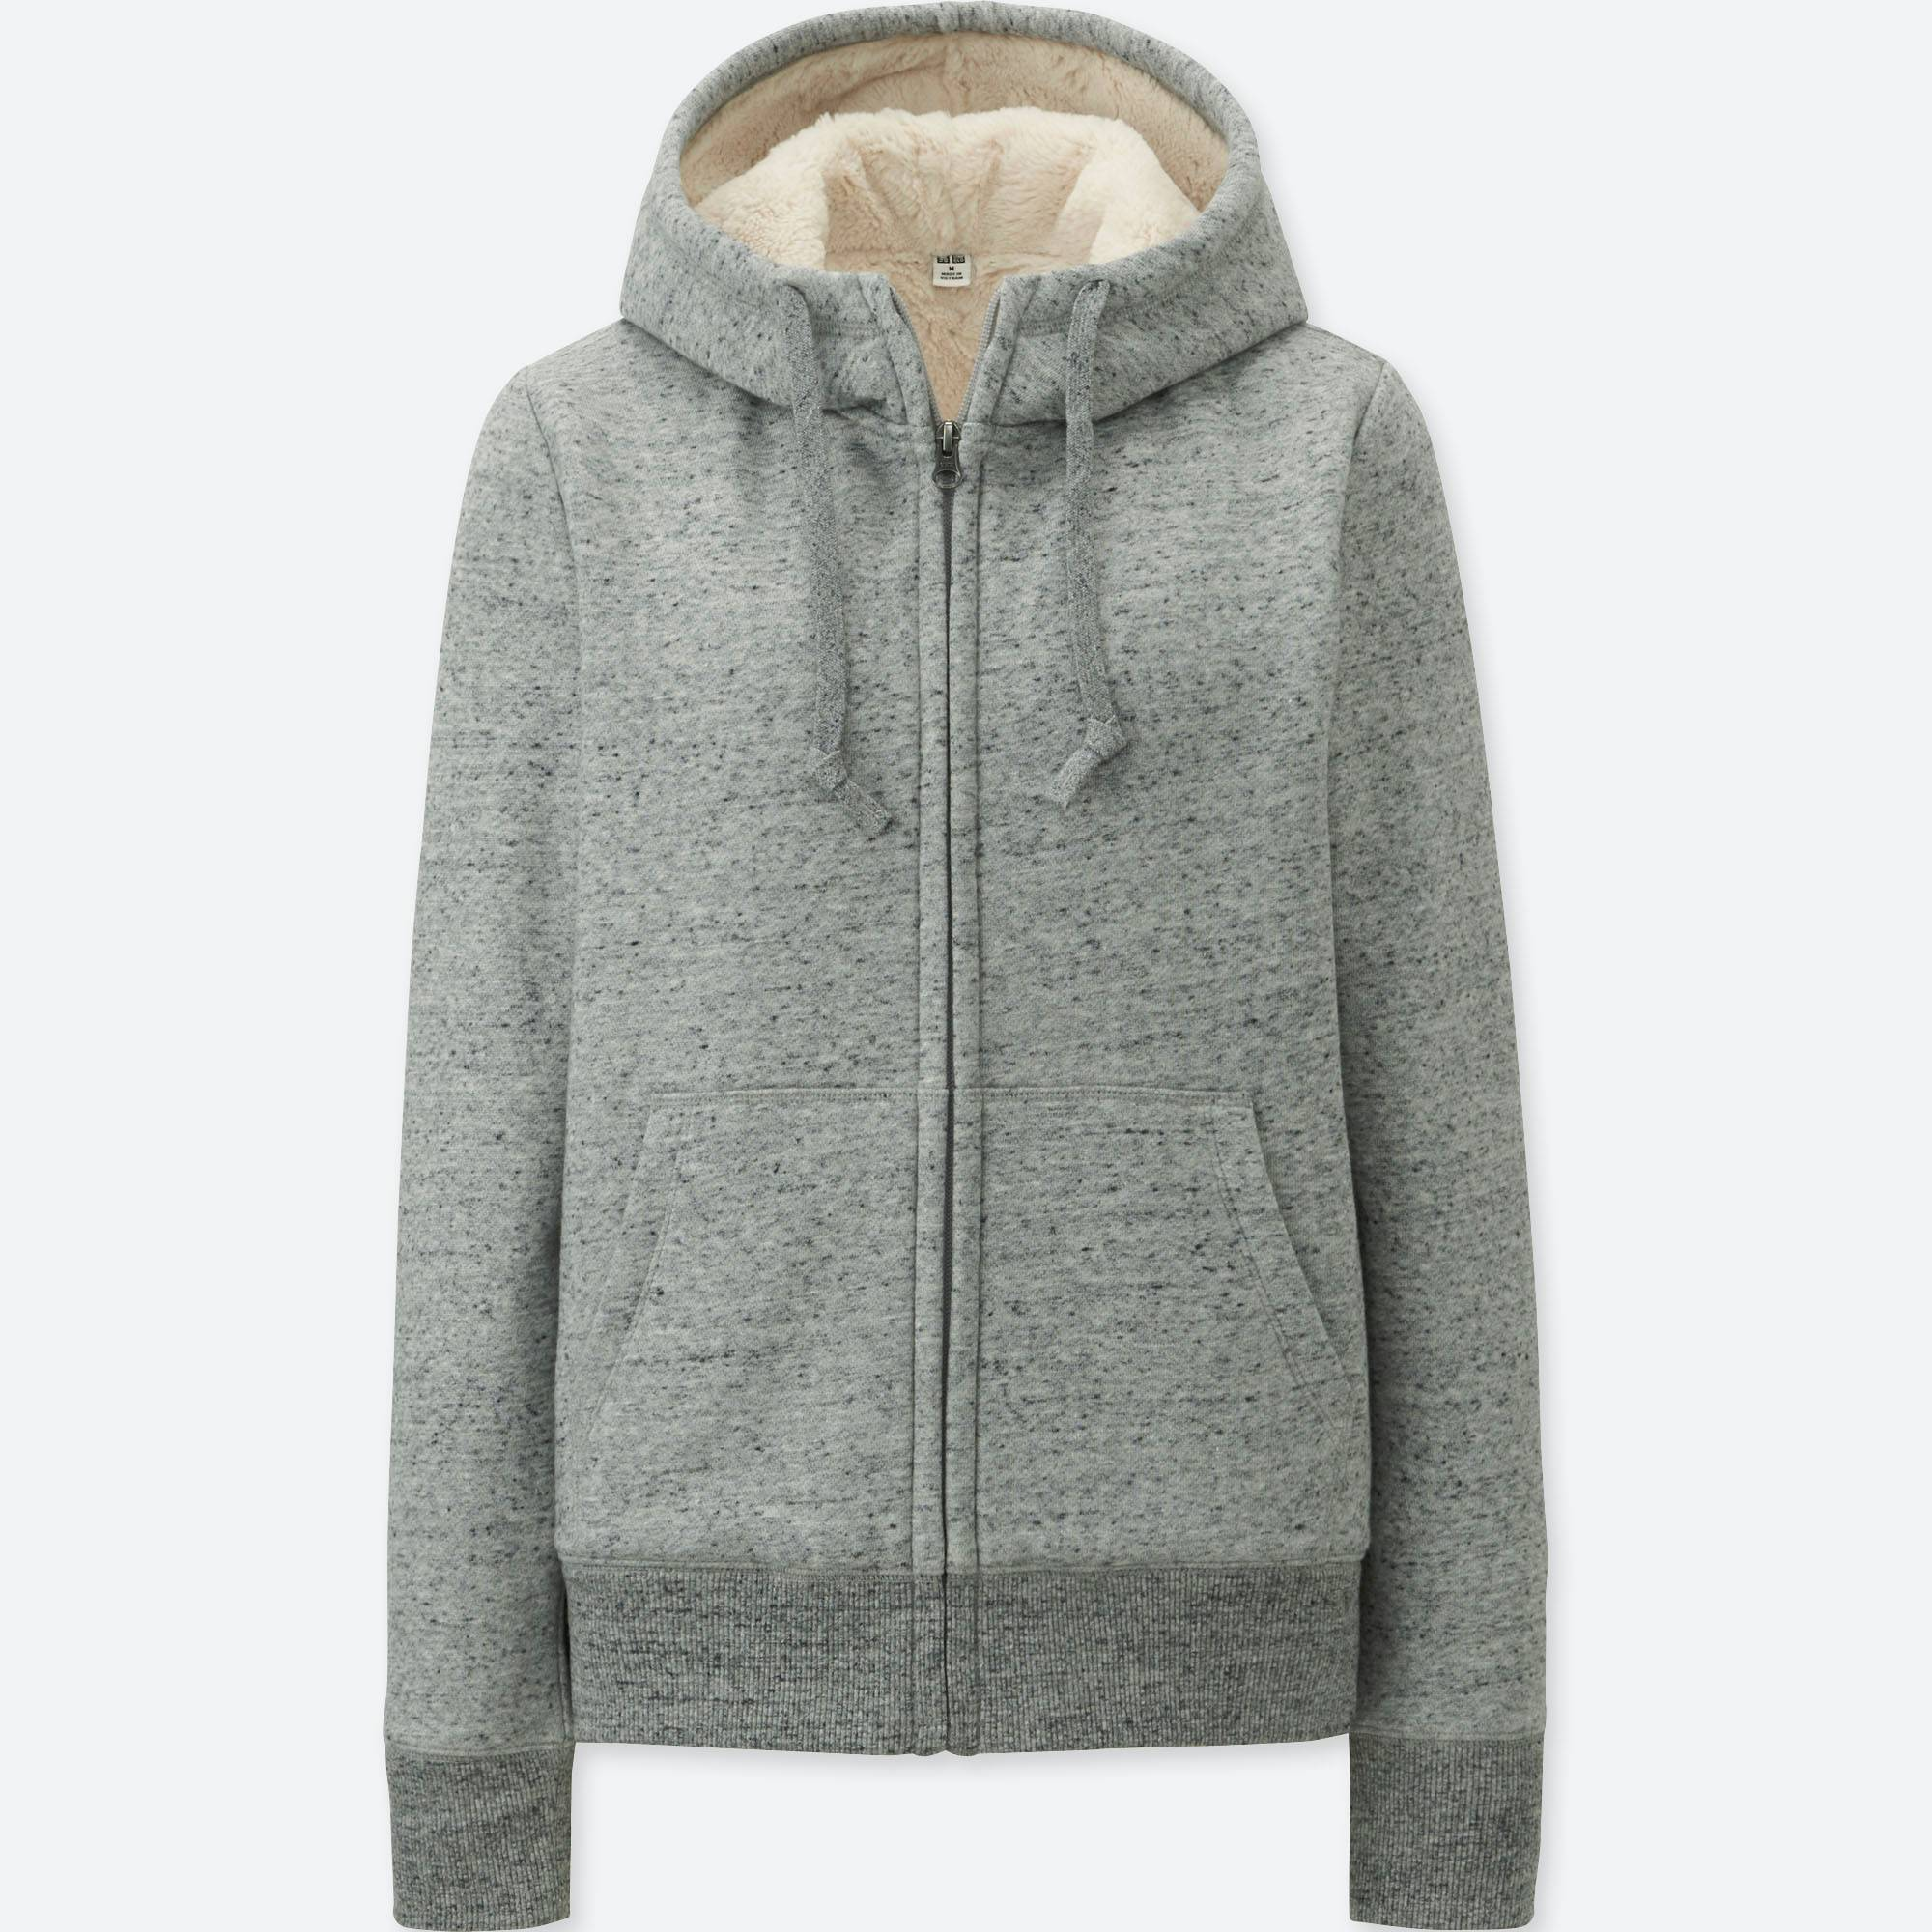 WOMEN PILE-LINED SWEAT LONG-SLEEVE FULL-ZIP HOODIE | UNIQLO US